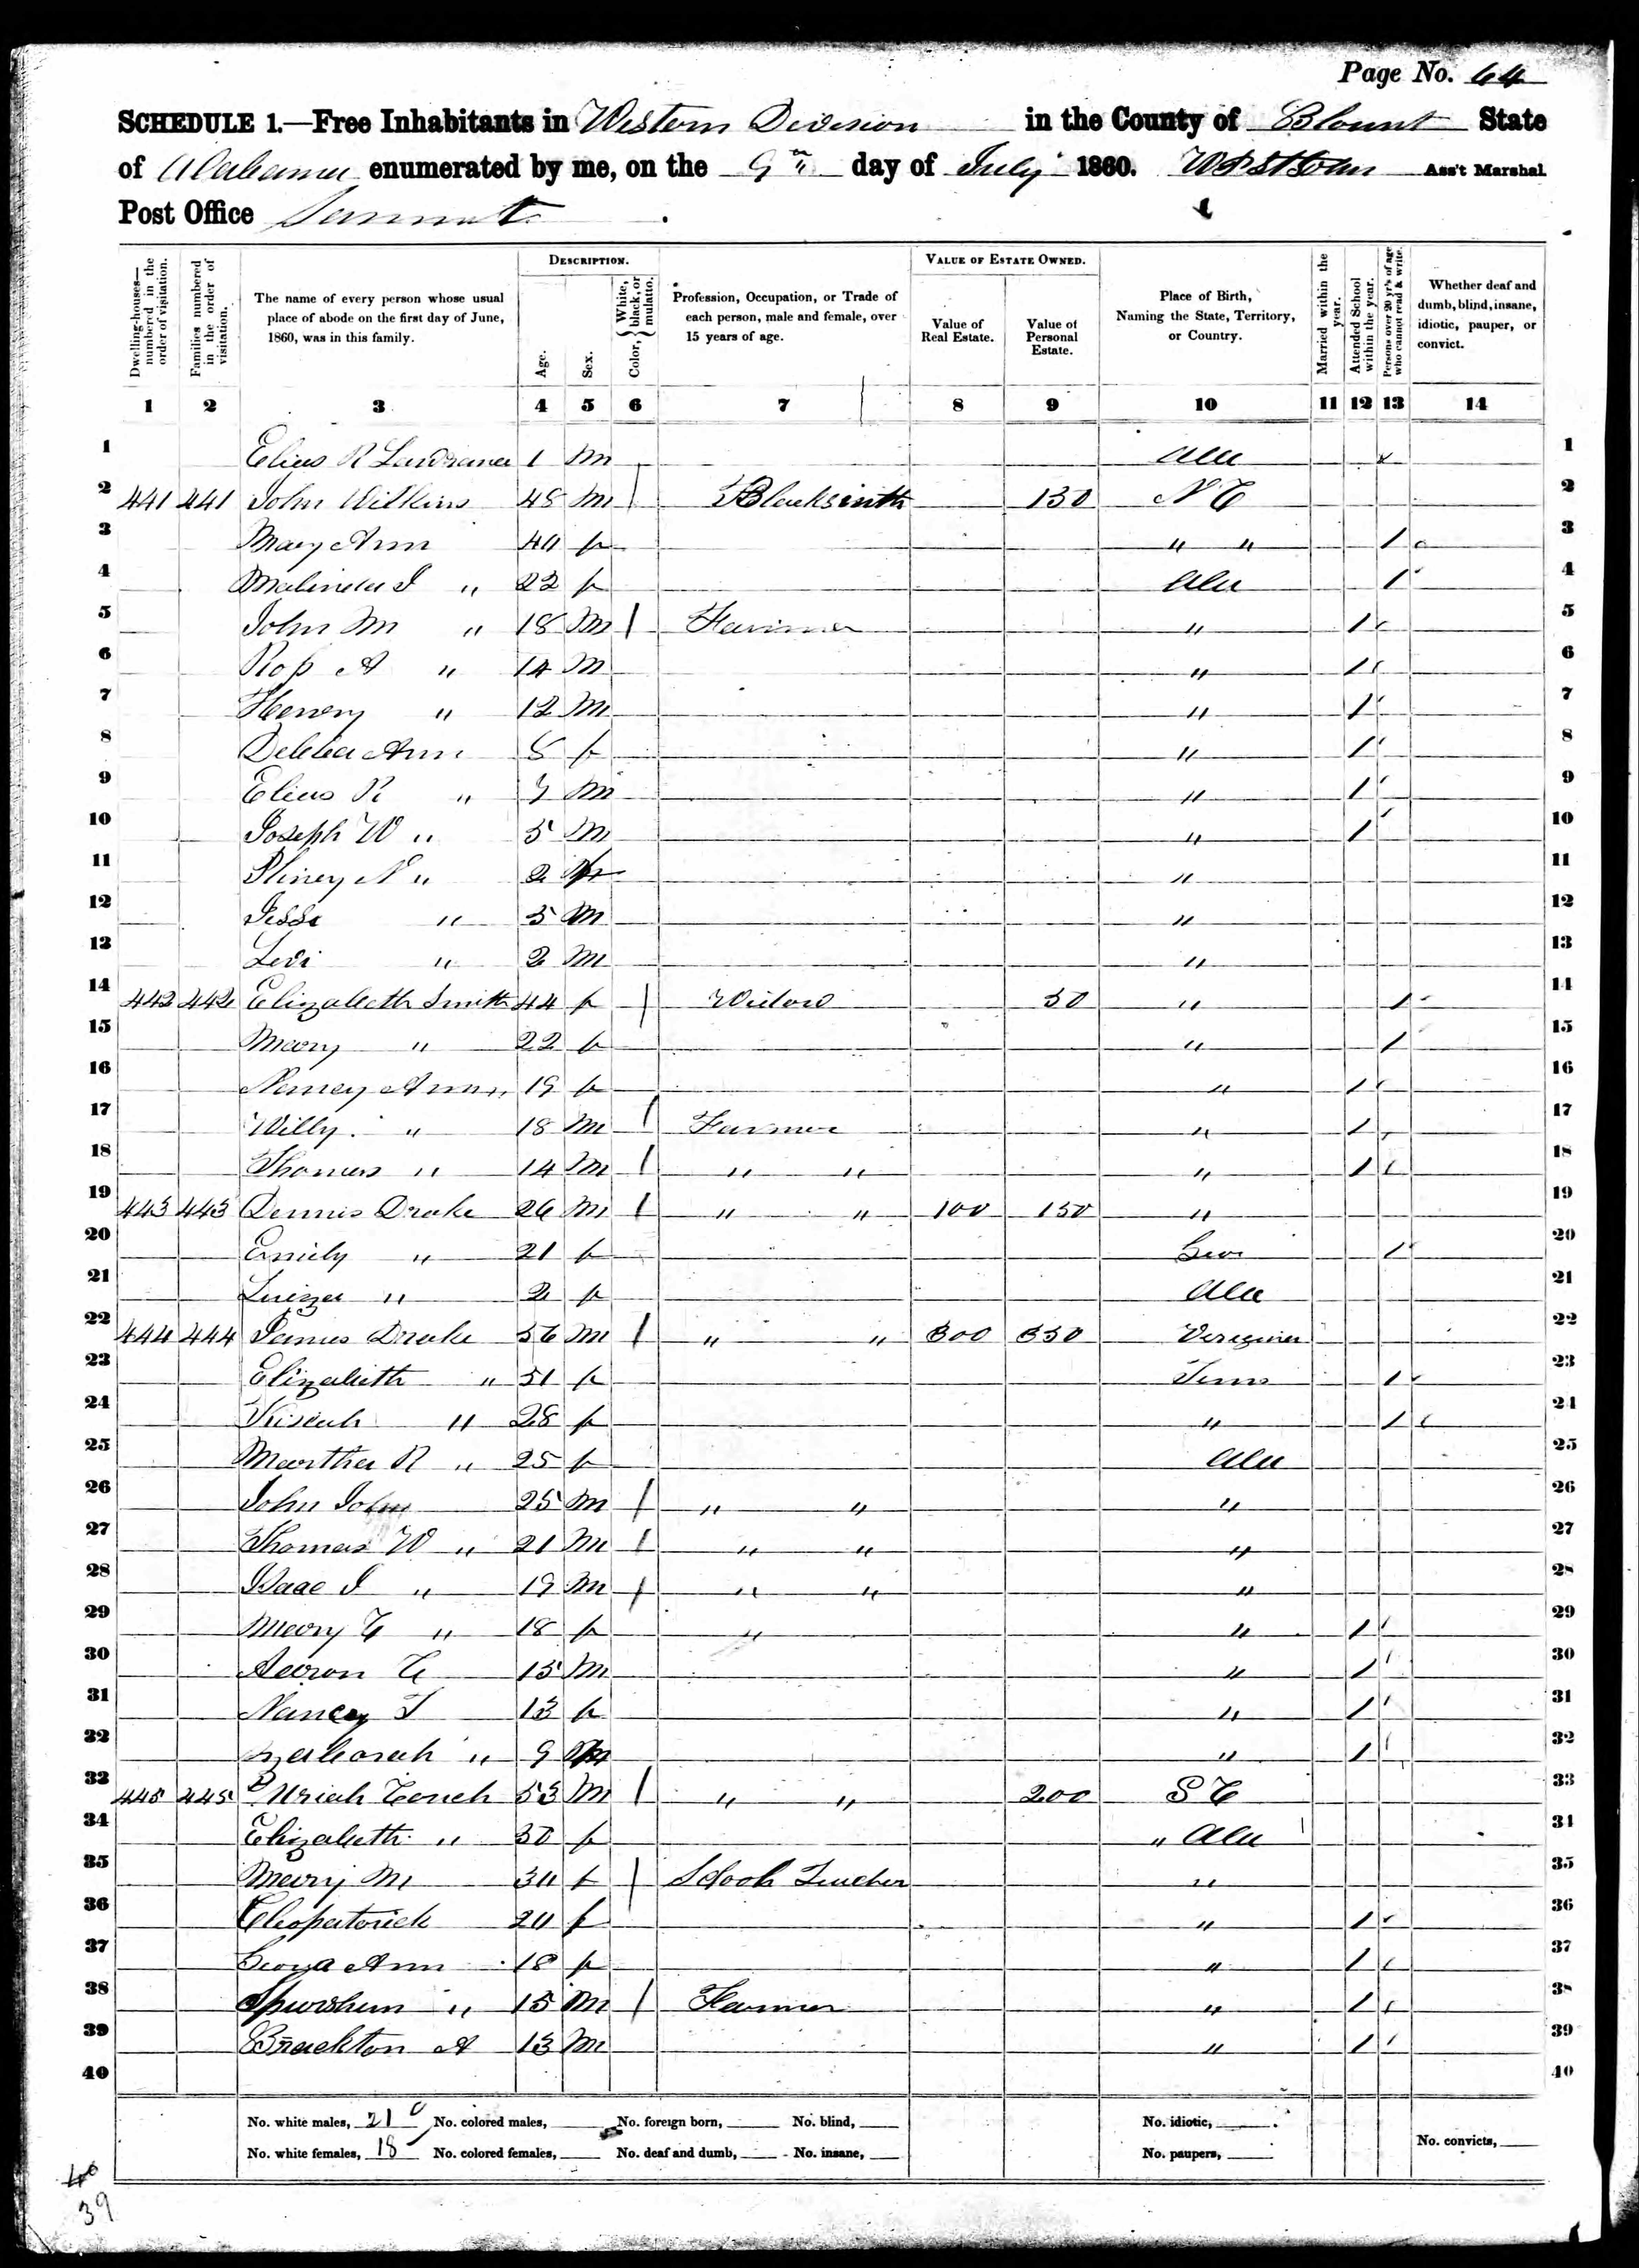 1860 United States Federal Census-Morgan County, AL